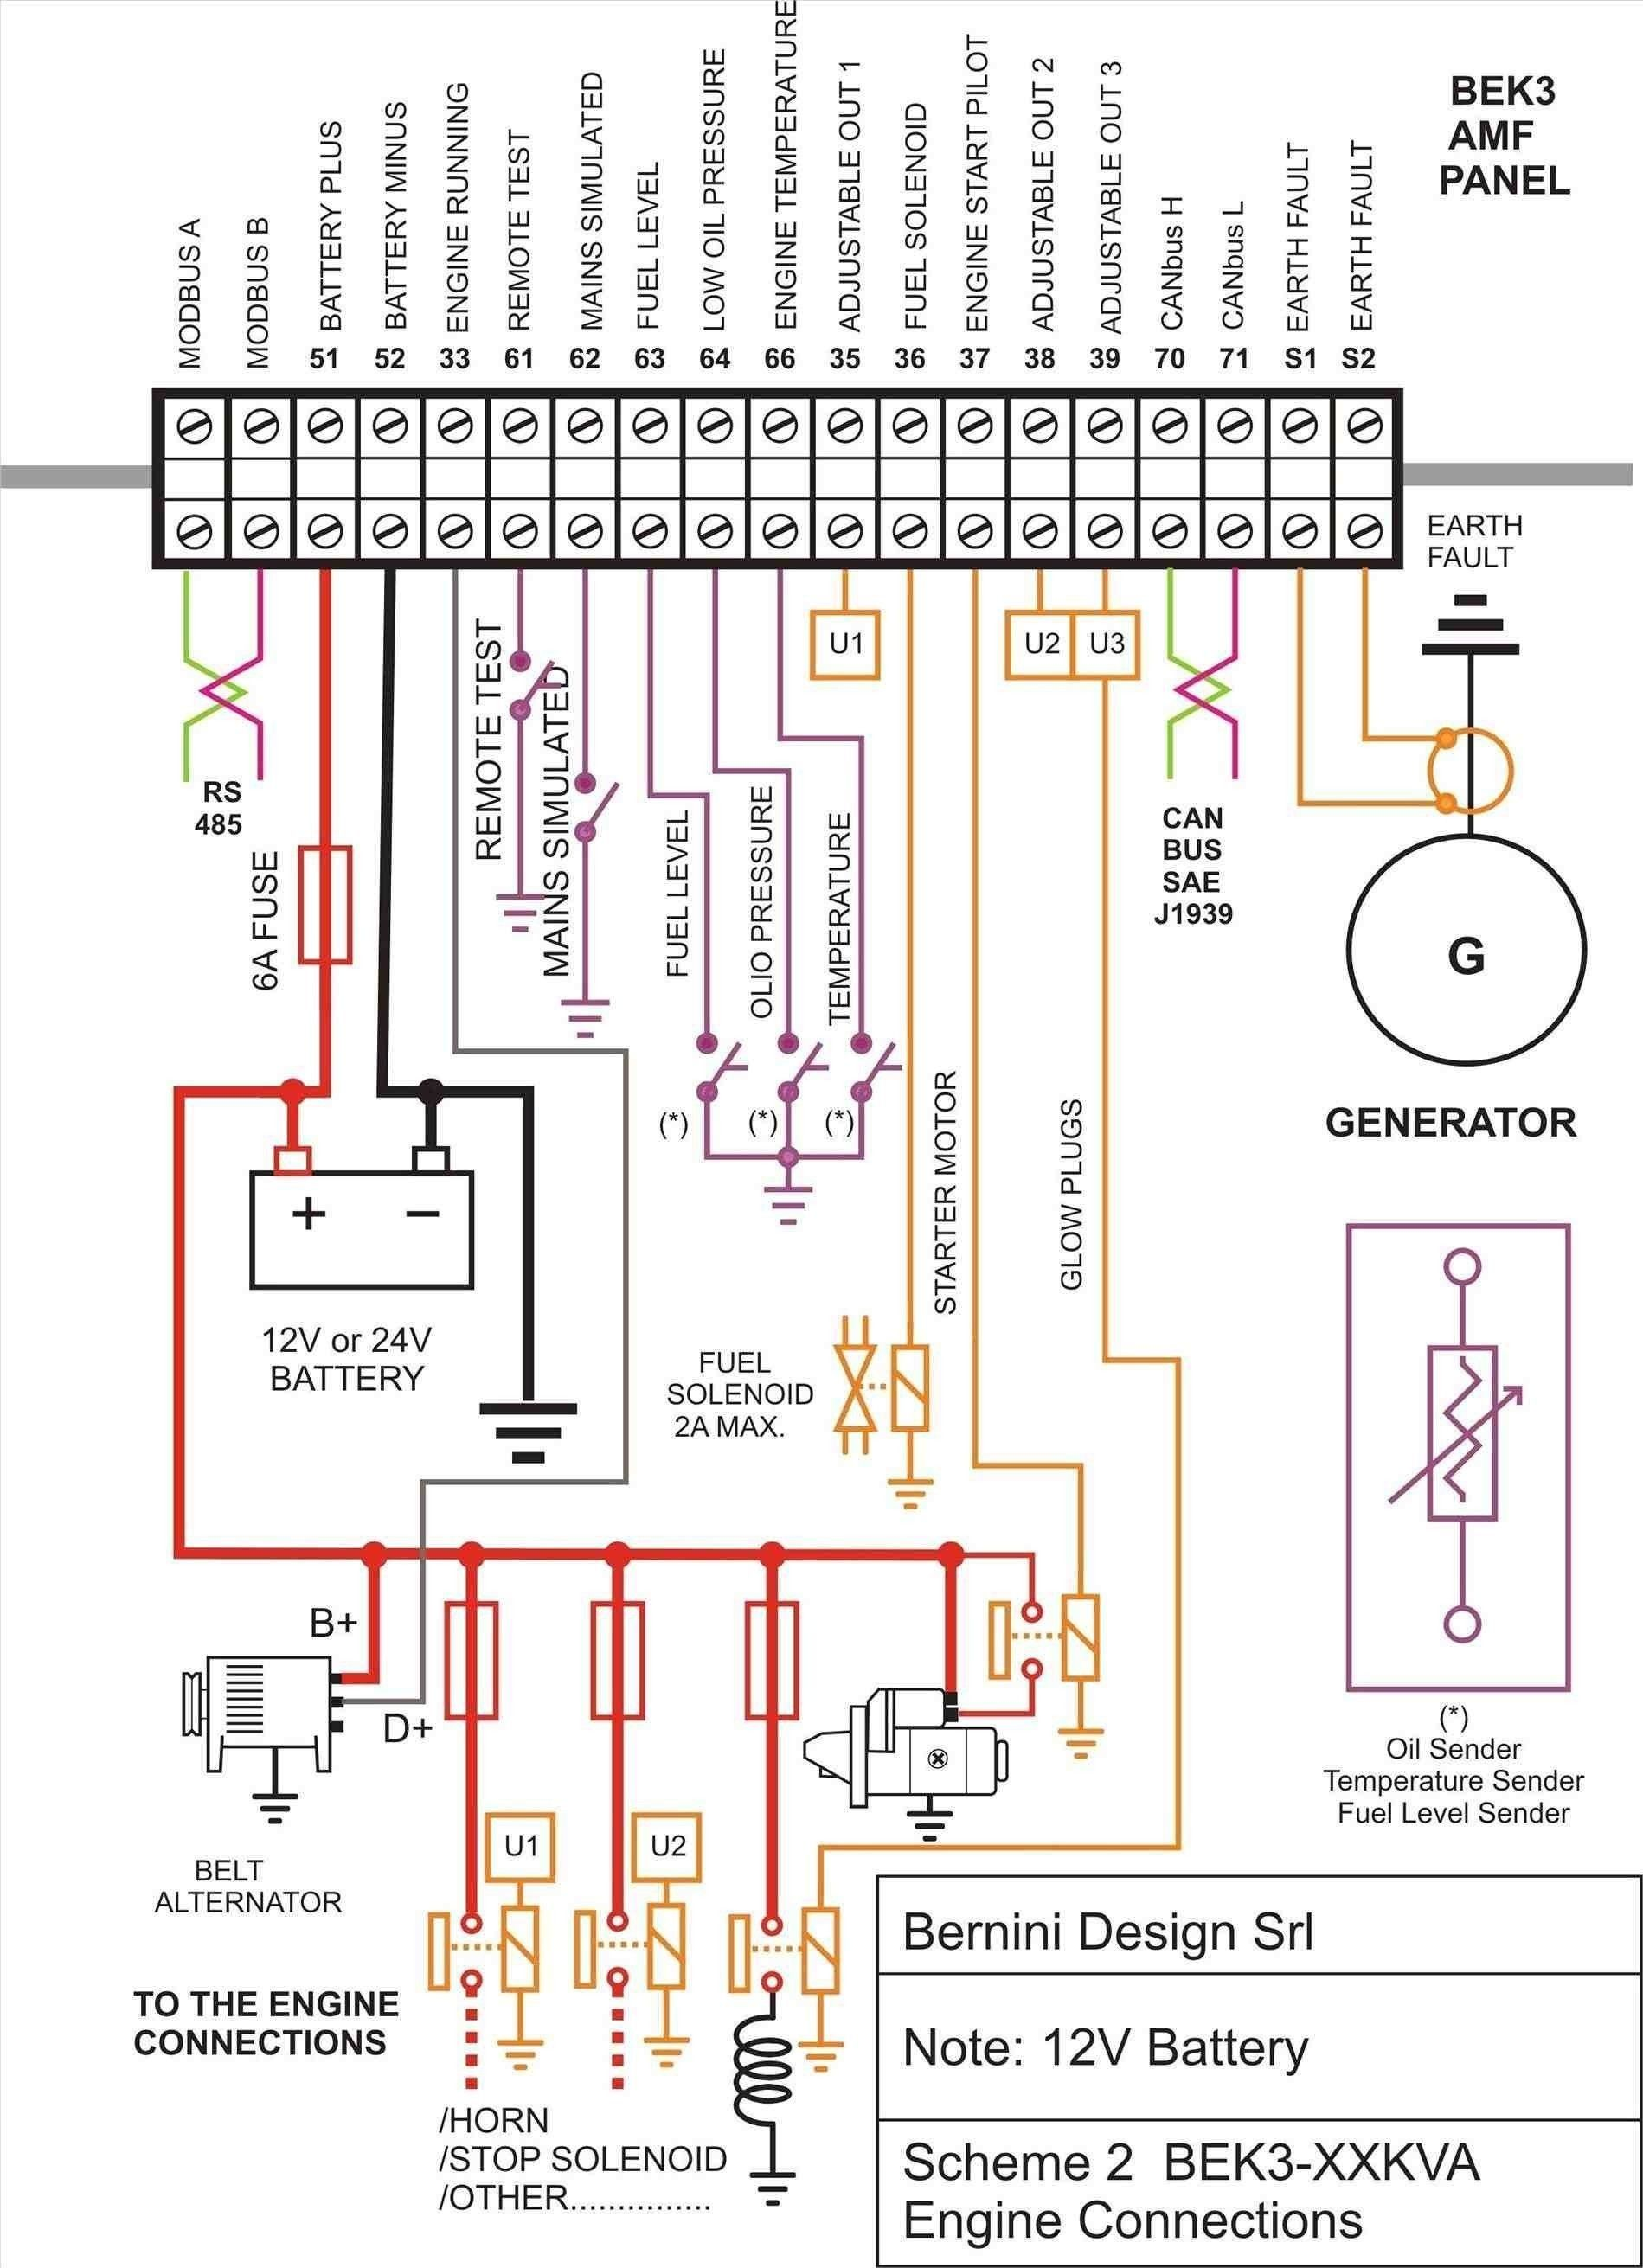 Unique Electrical Circuit Diagram House Wiring Pdf Electrical Circuit Diagram Electrical Wiring Diagram Electrical Panel Wiring